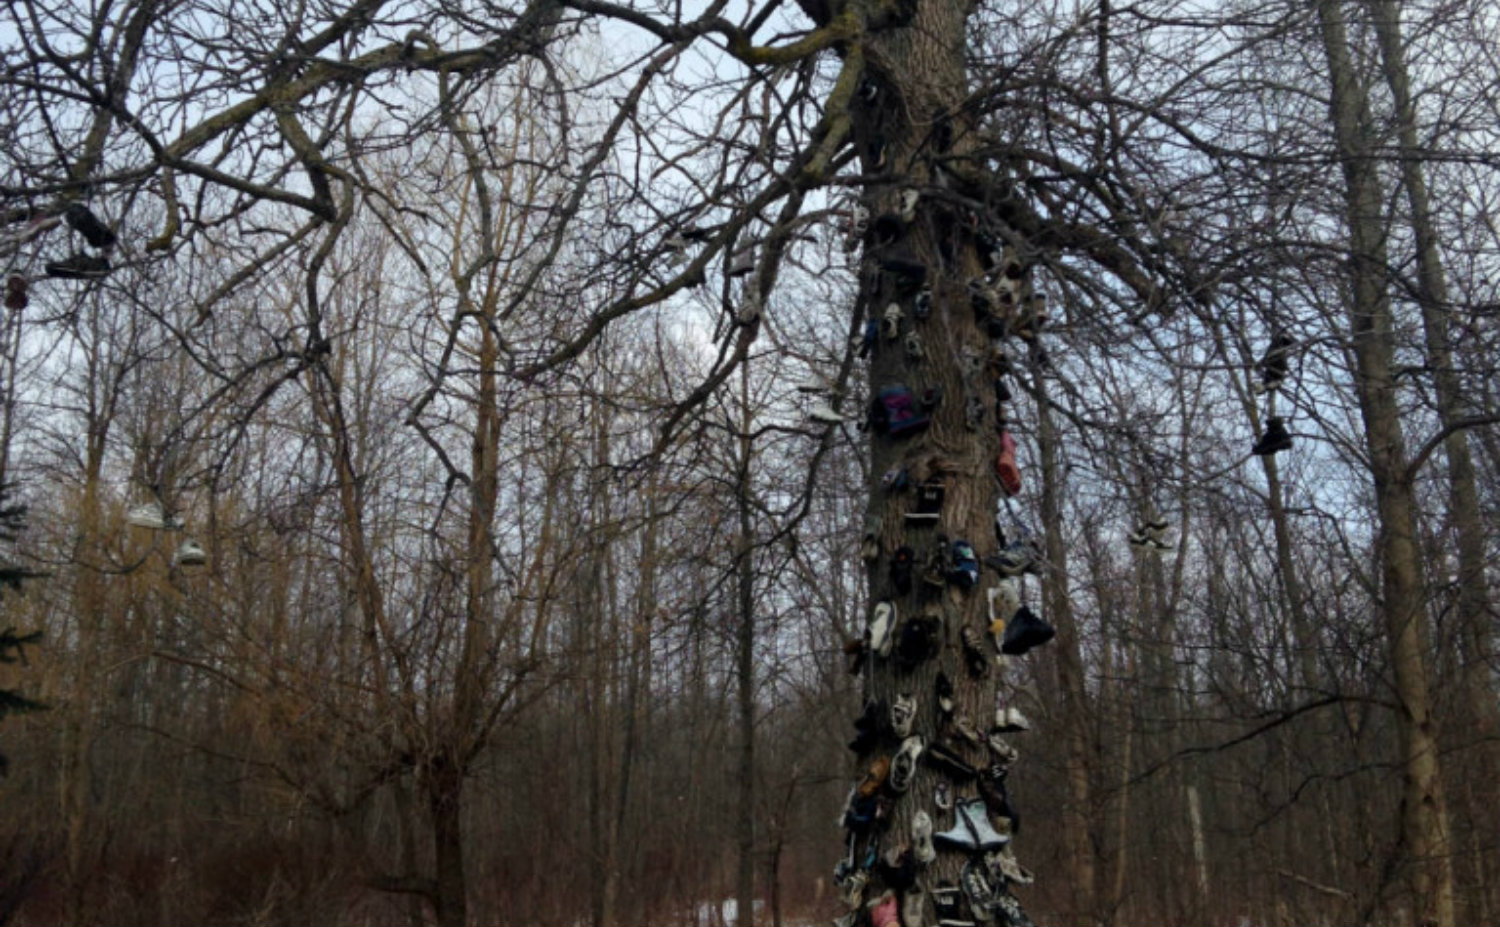 Shoe Tree of Amherst, NY - Featured Image